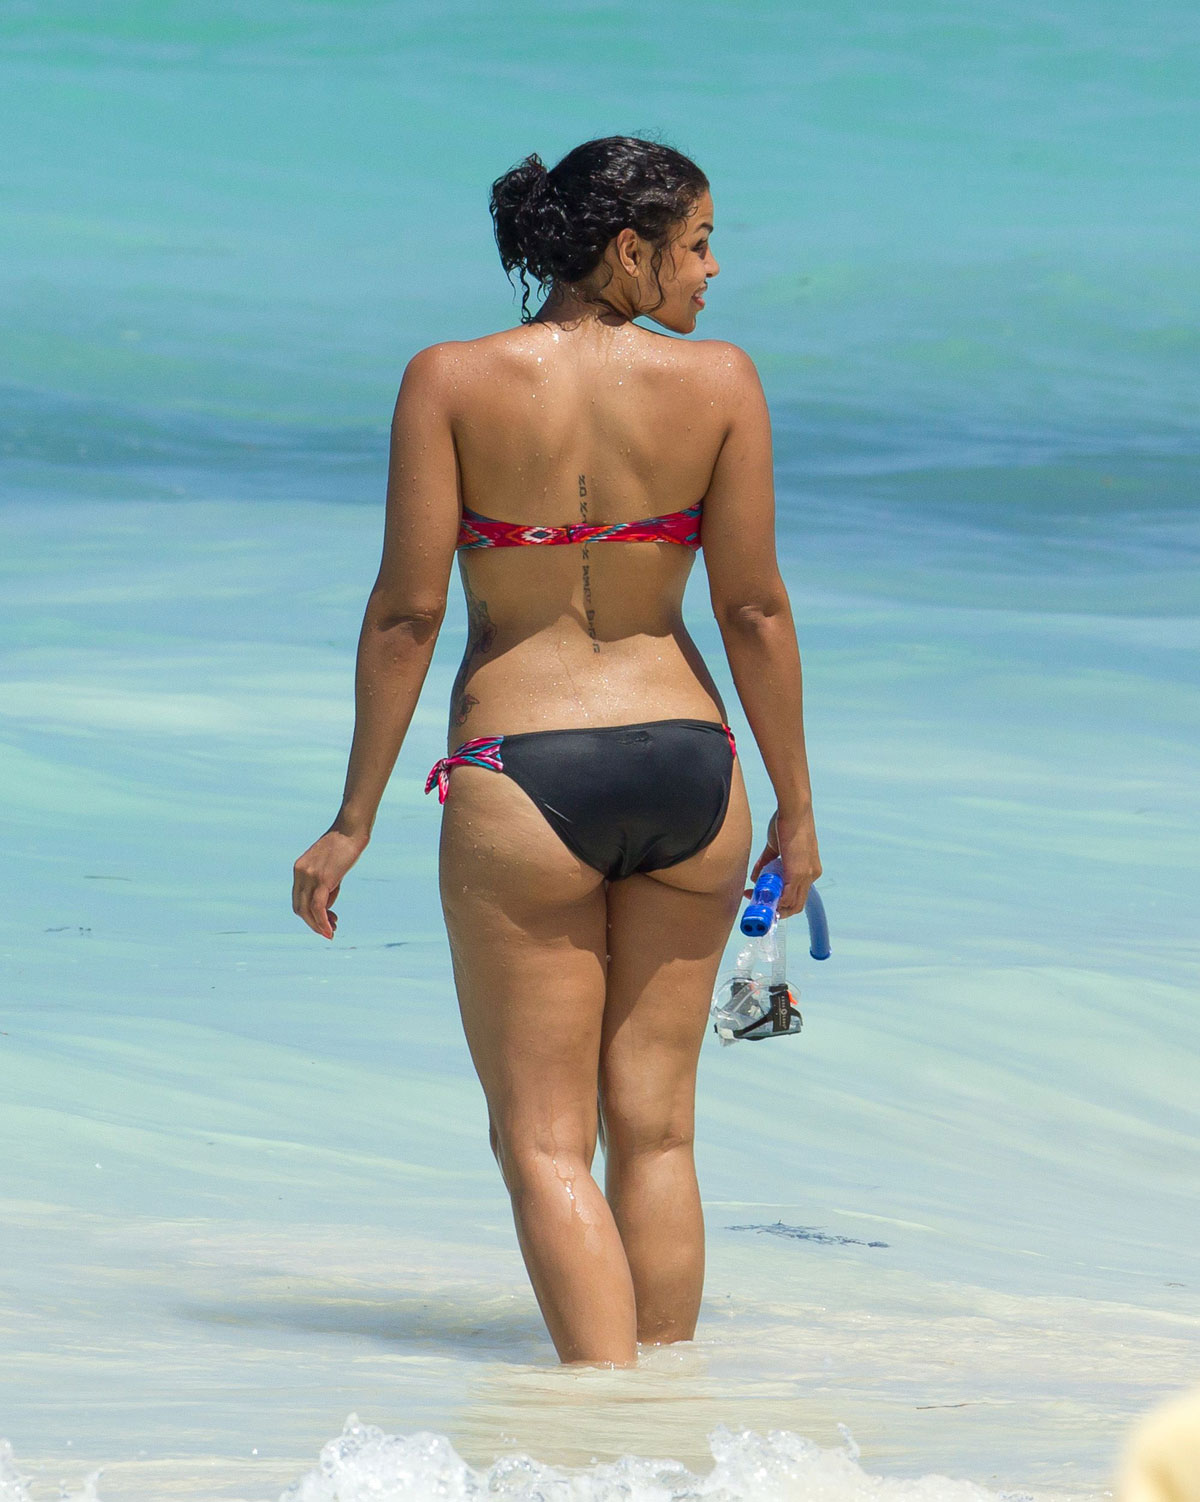 Jordin Sparks Has Some Great Stuff To Say About Body Confidence